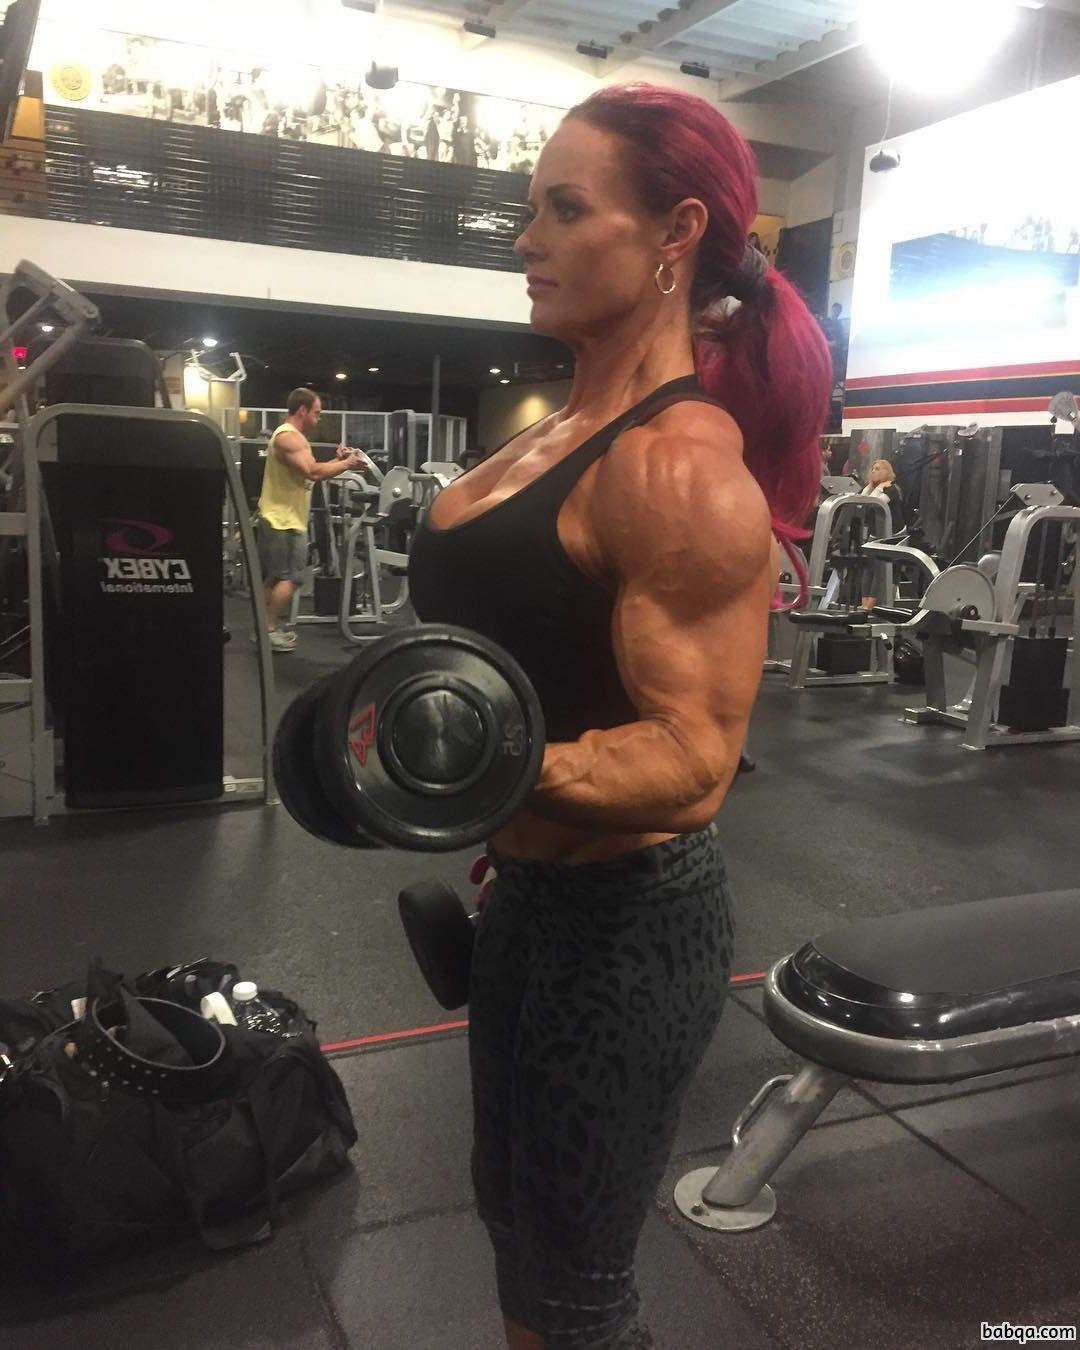 awesome female bodybuilder with muscular body and toned ass post from g+